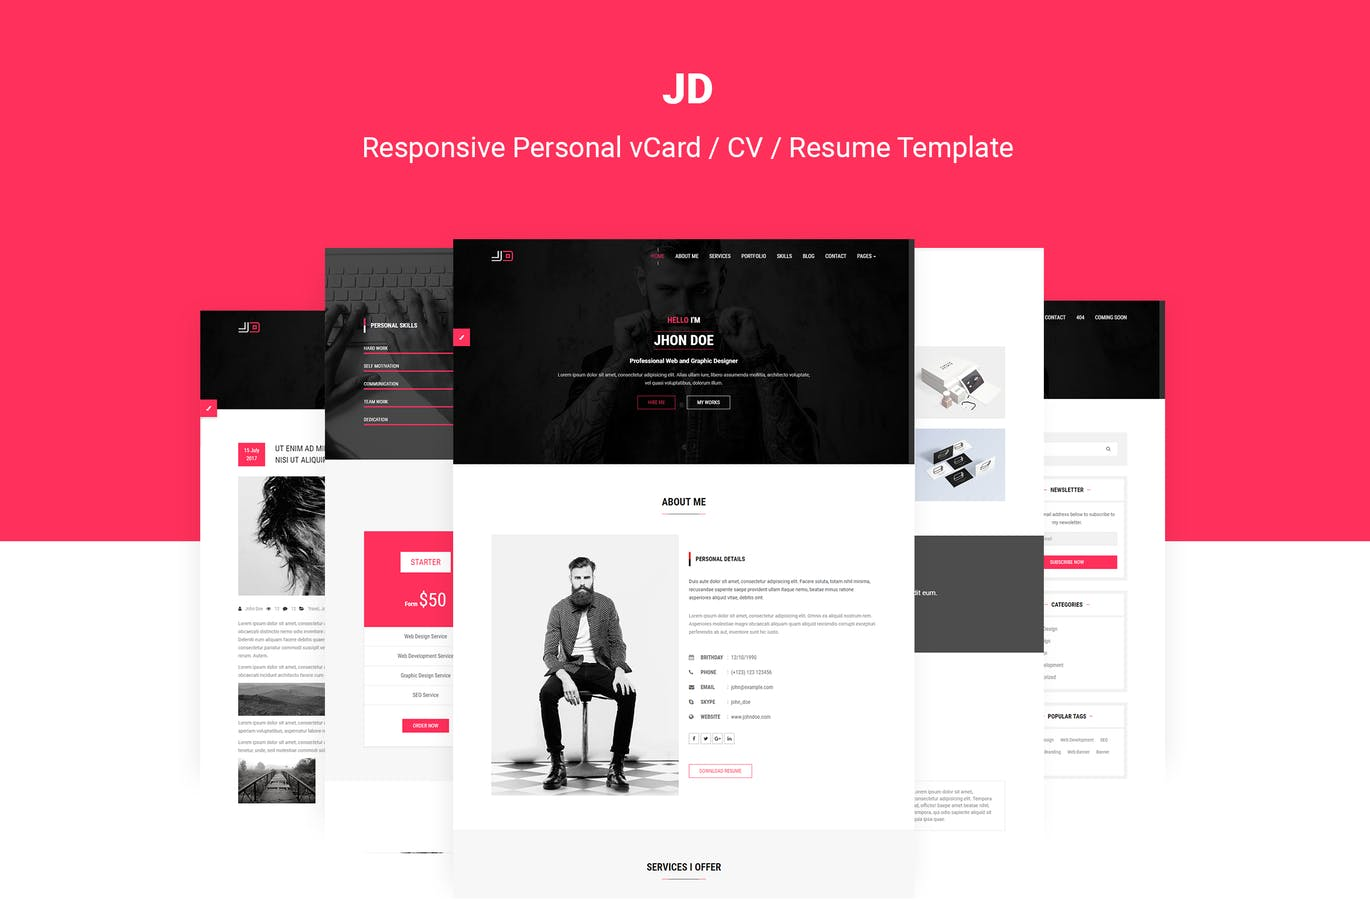 jd personal vcard cv resume template premium creative assets for make on phone trucking Resume Personal Assets For Resume